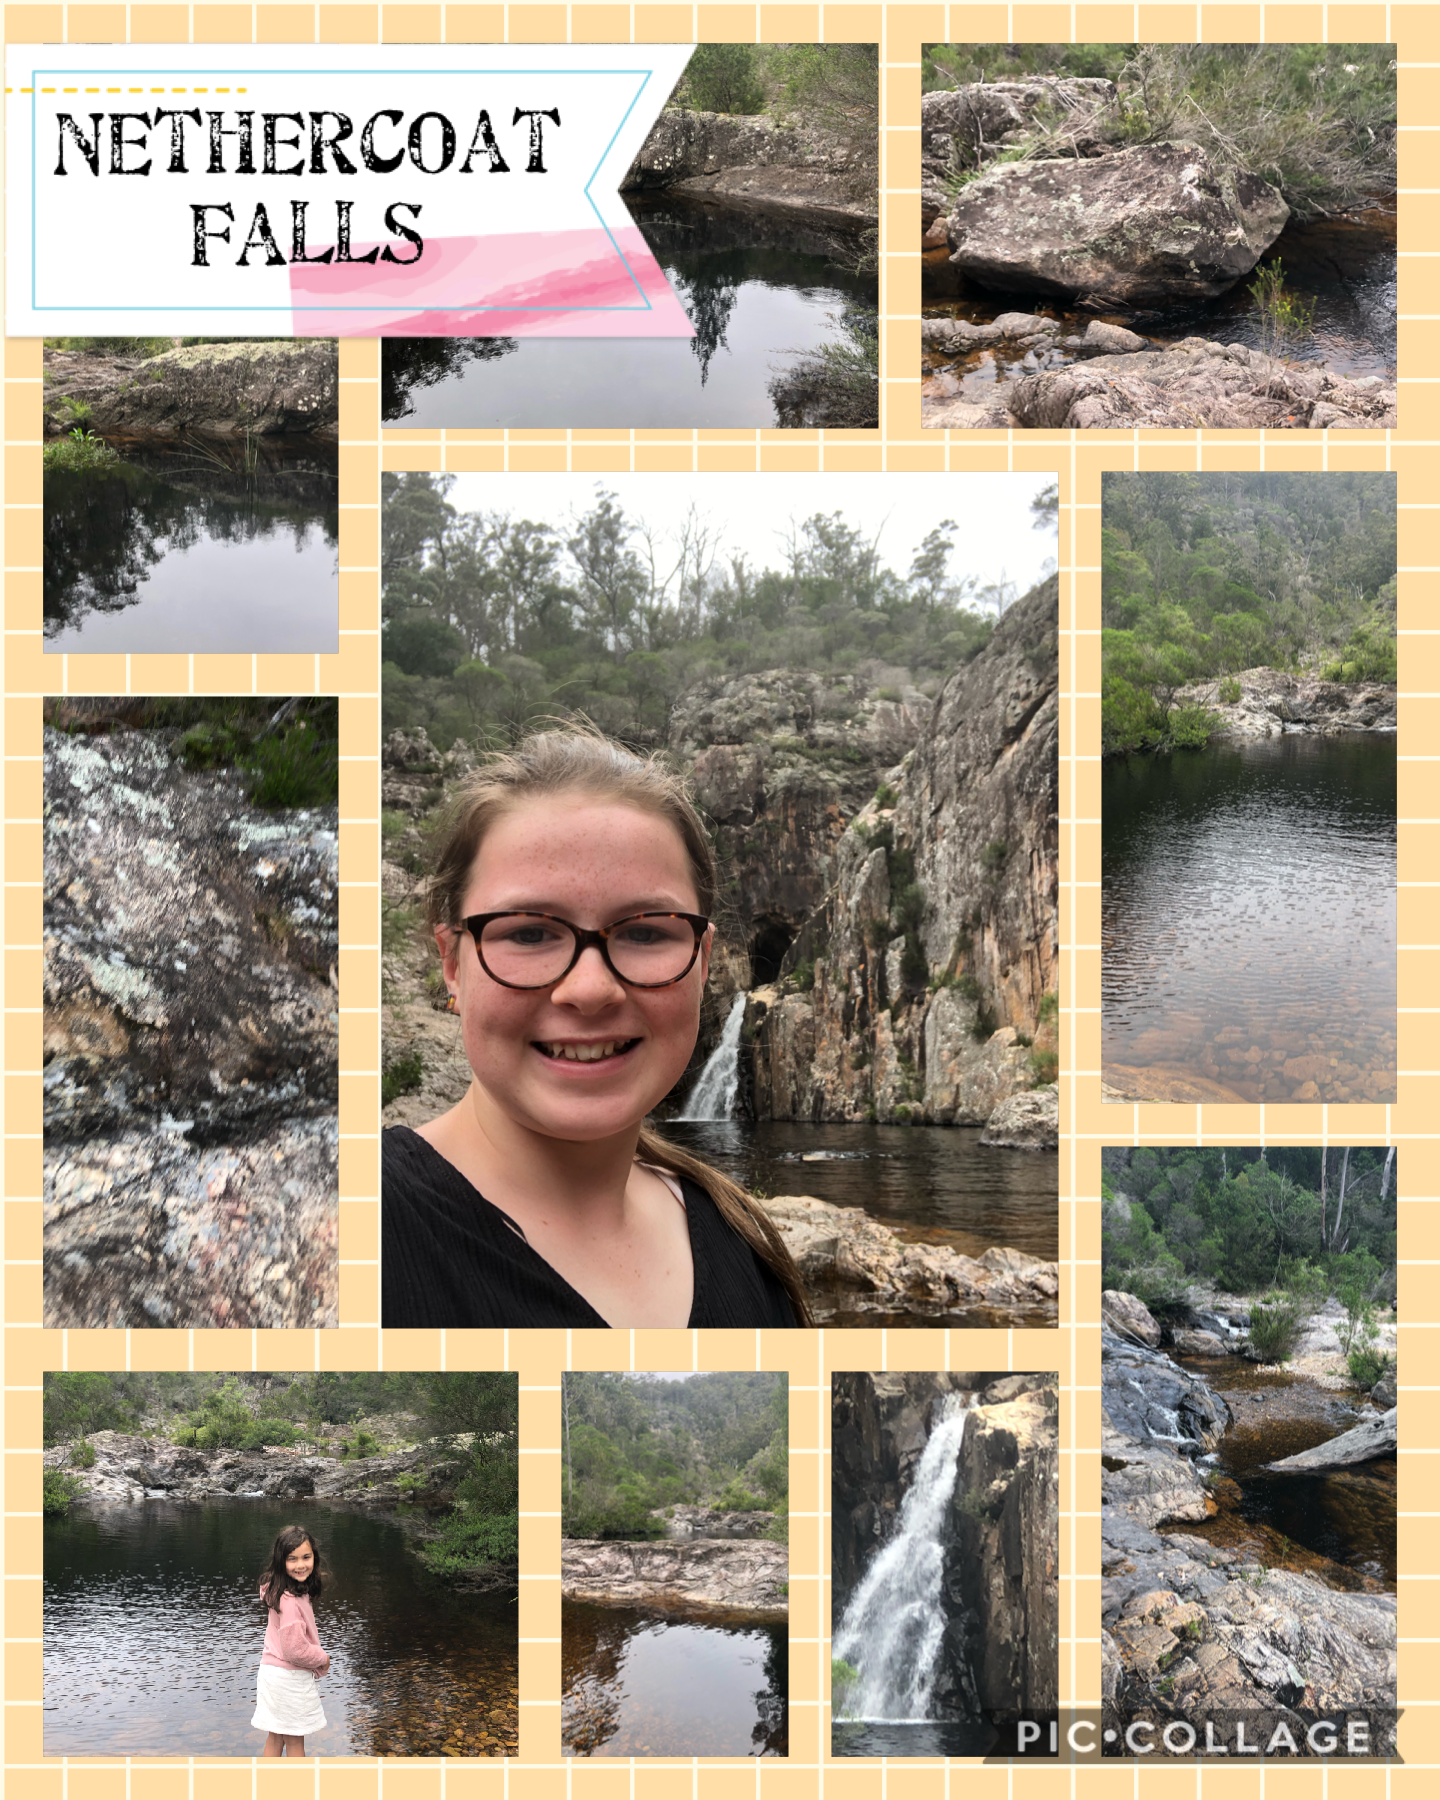 My family and I went to a very beautiful waterfall today. We had our doubts at the start because of all the reviews the place had been given 😒, but we managed and we had the time of our lives. Have you ever been anywhere that you had you doubts about, but